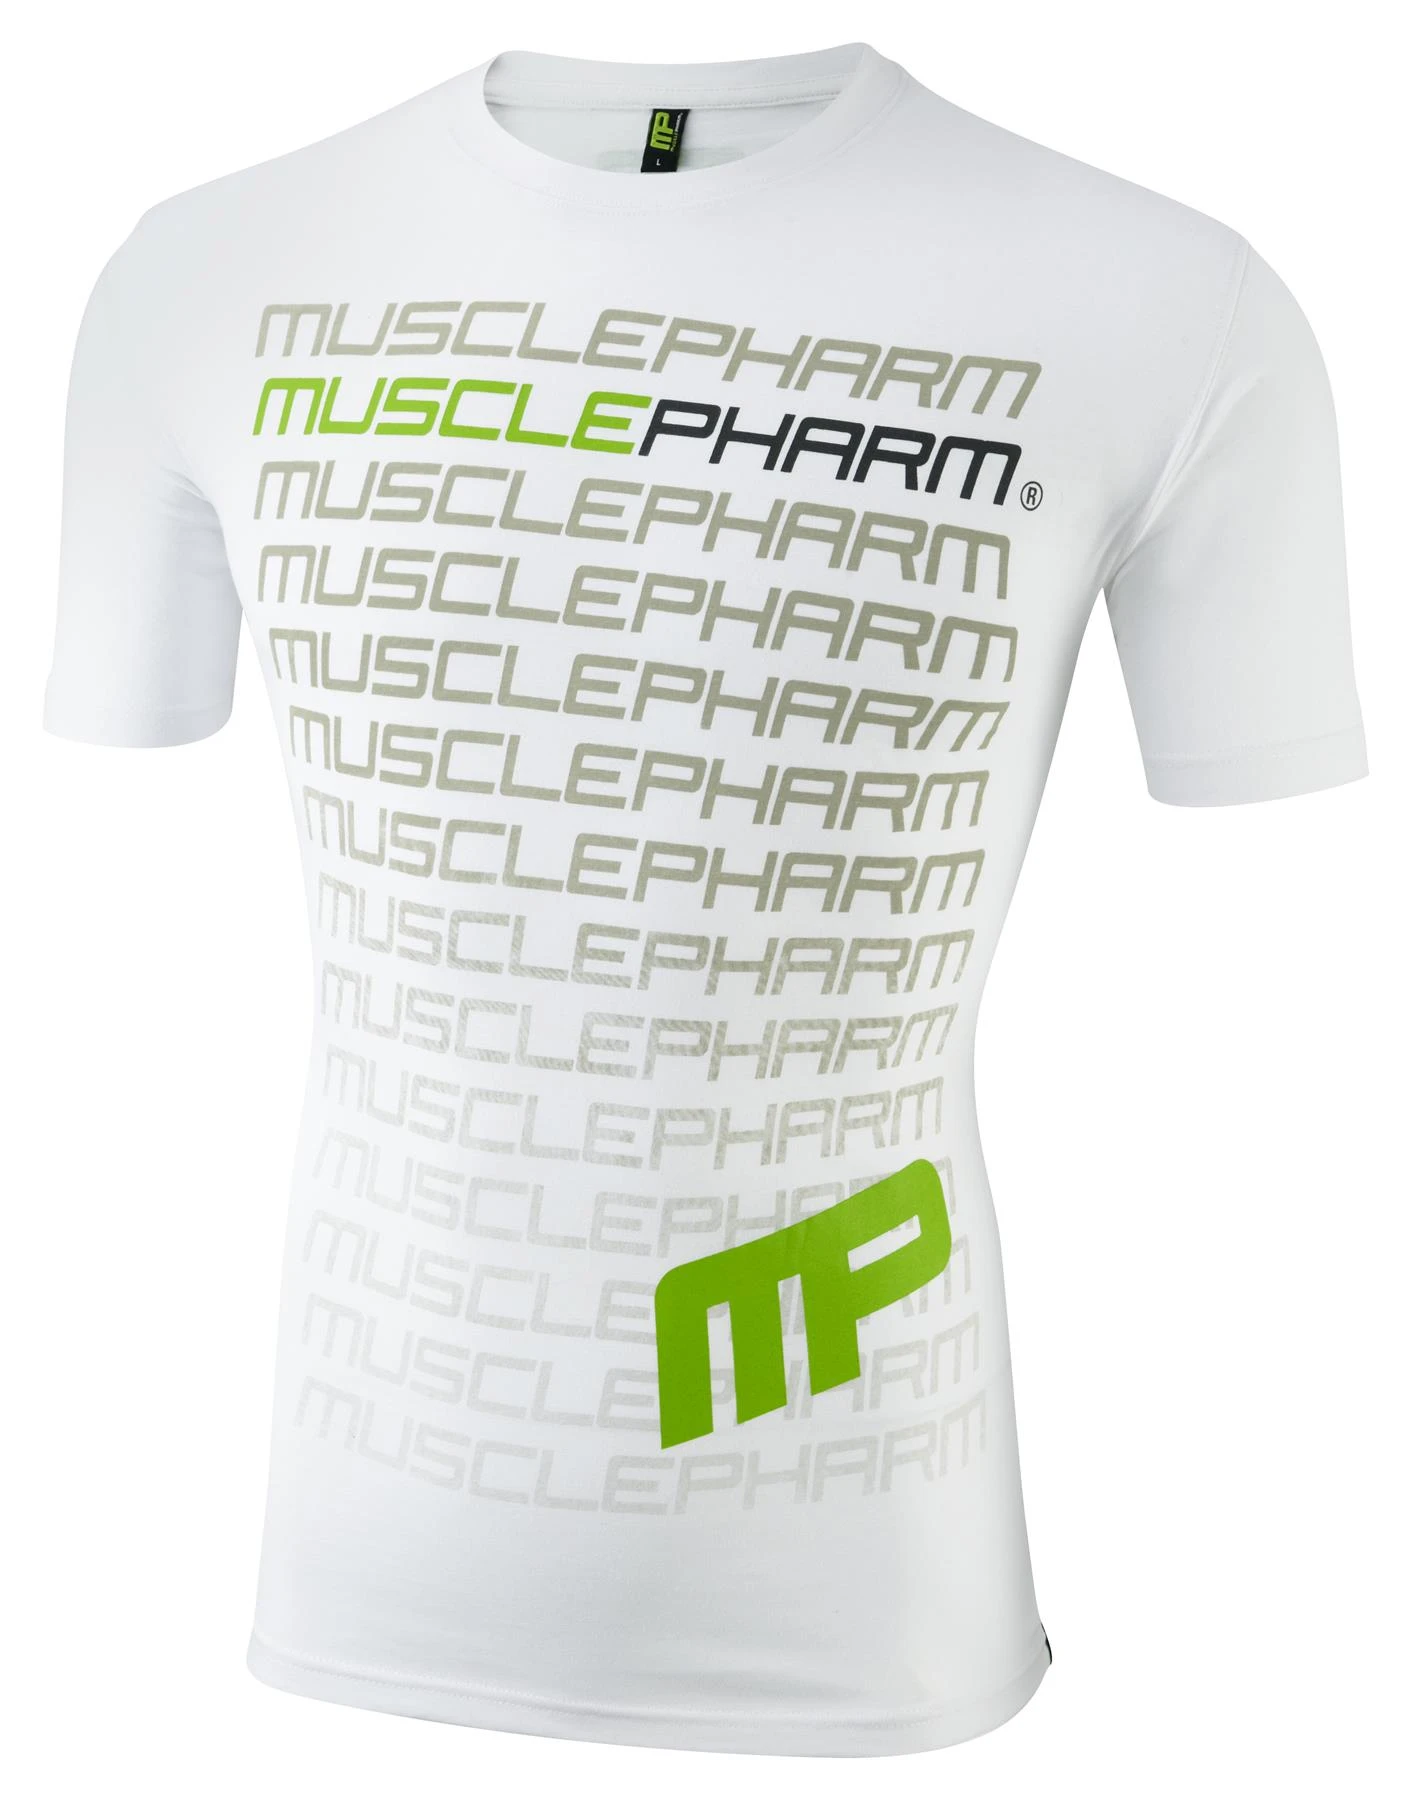 MusclePharm Crew Neck Flagship Tee